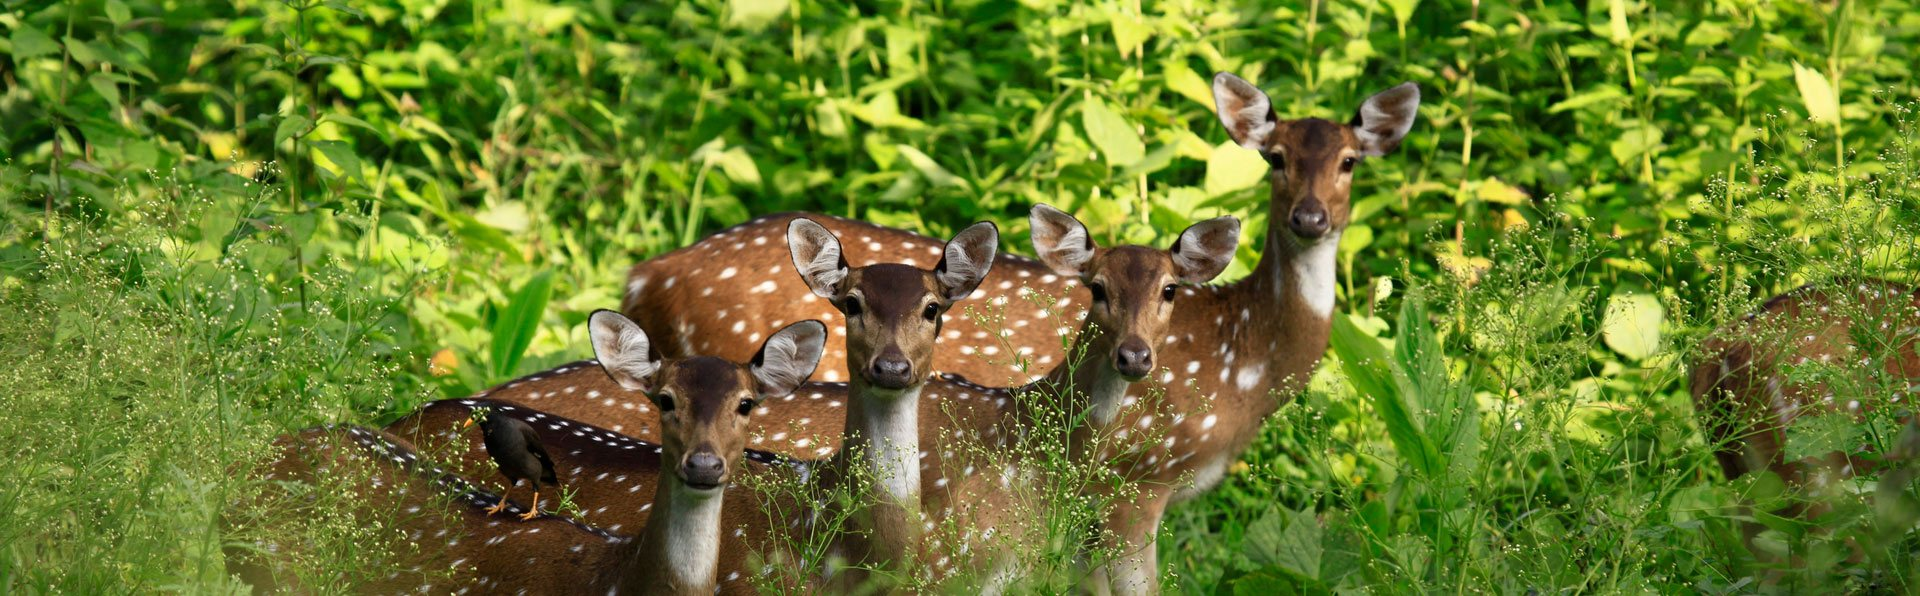 Wayanad Muthanga Forest Deers